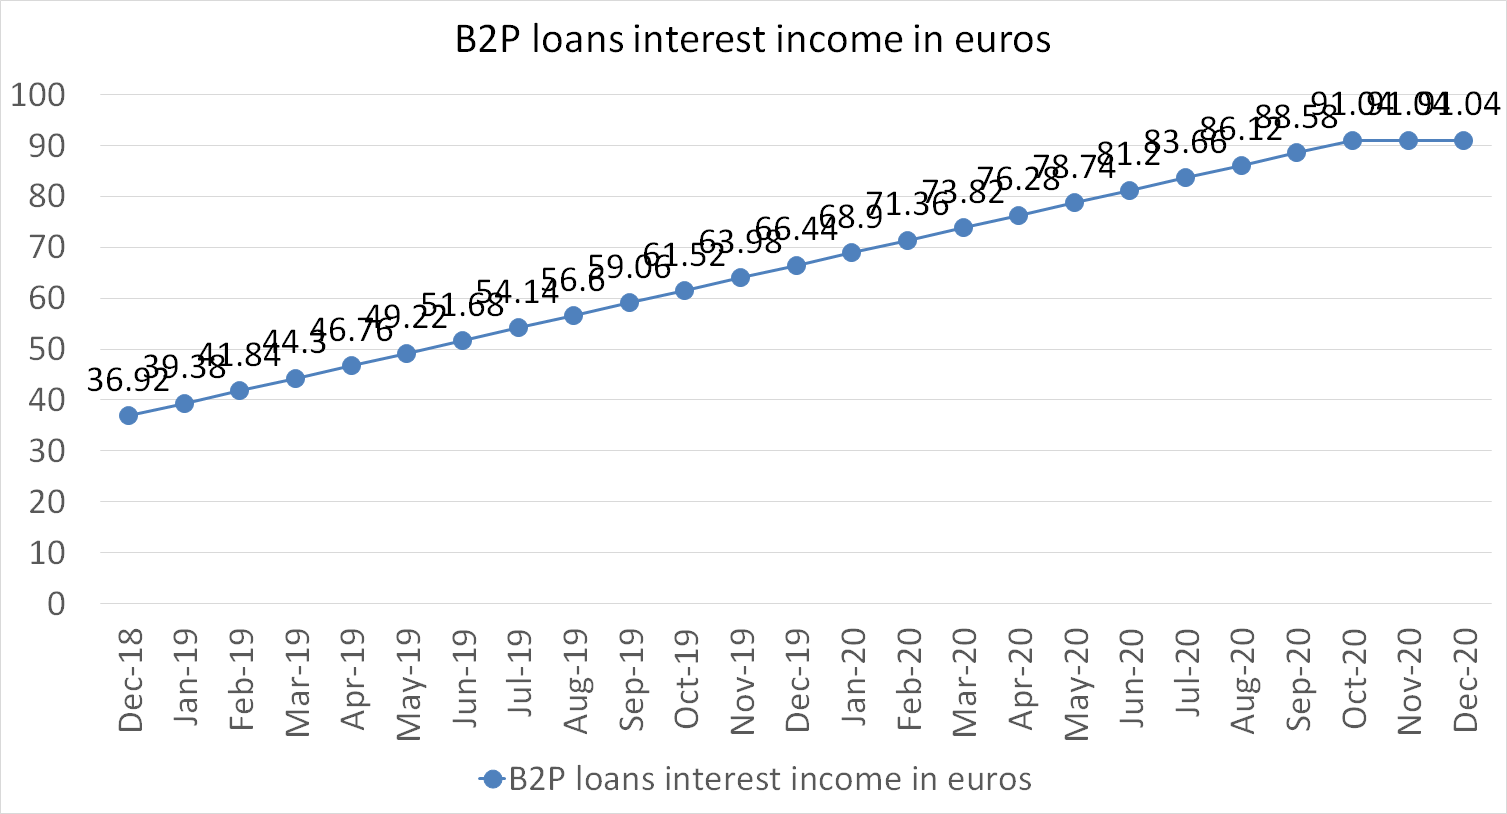 B2P loans interest income in euros december 2020